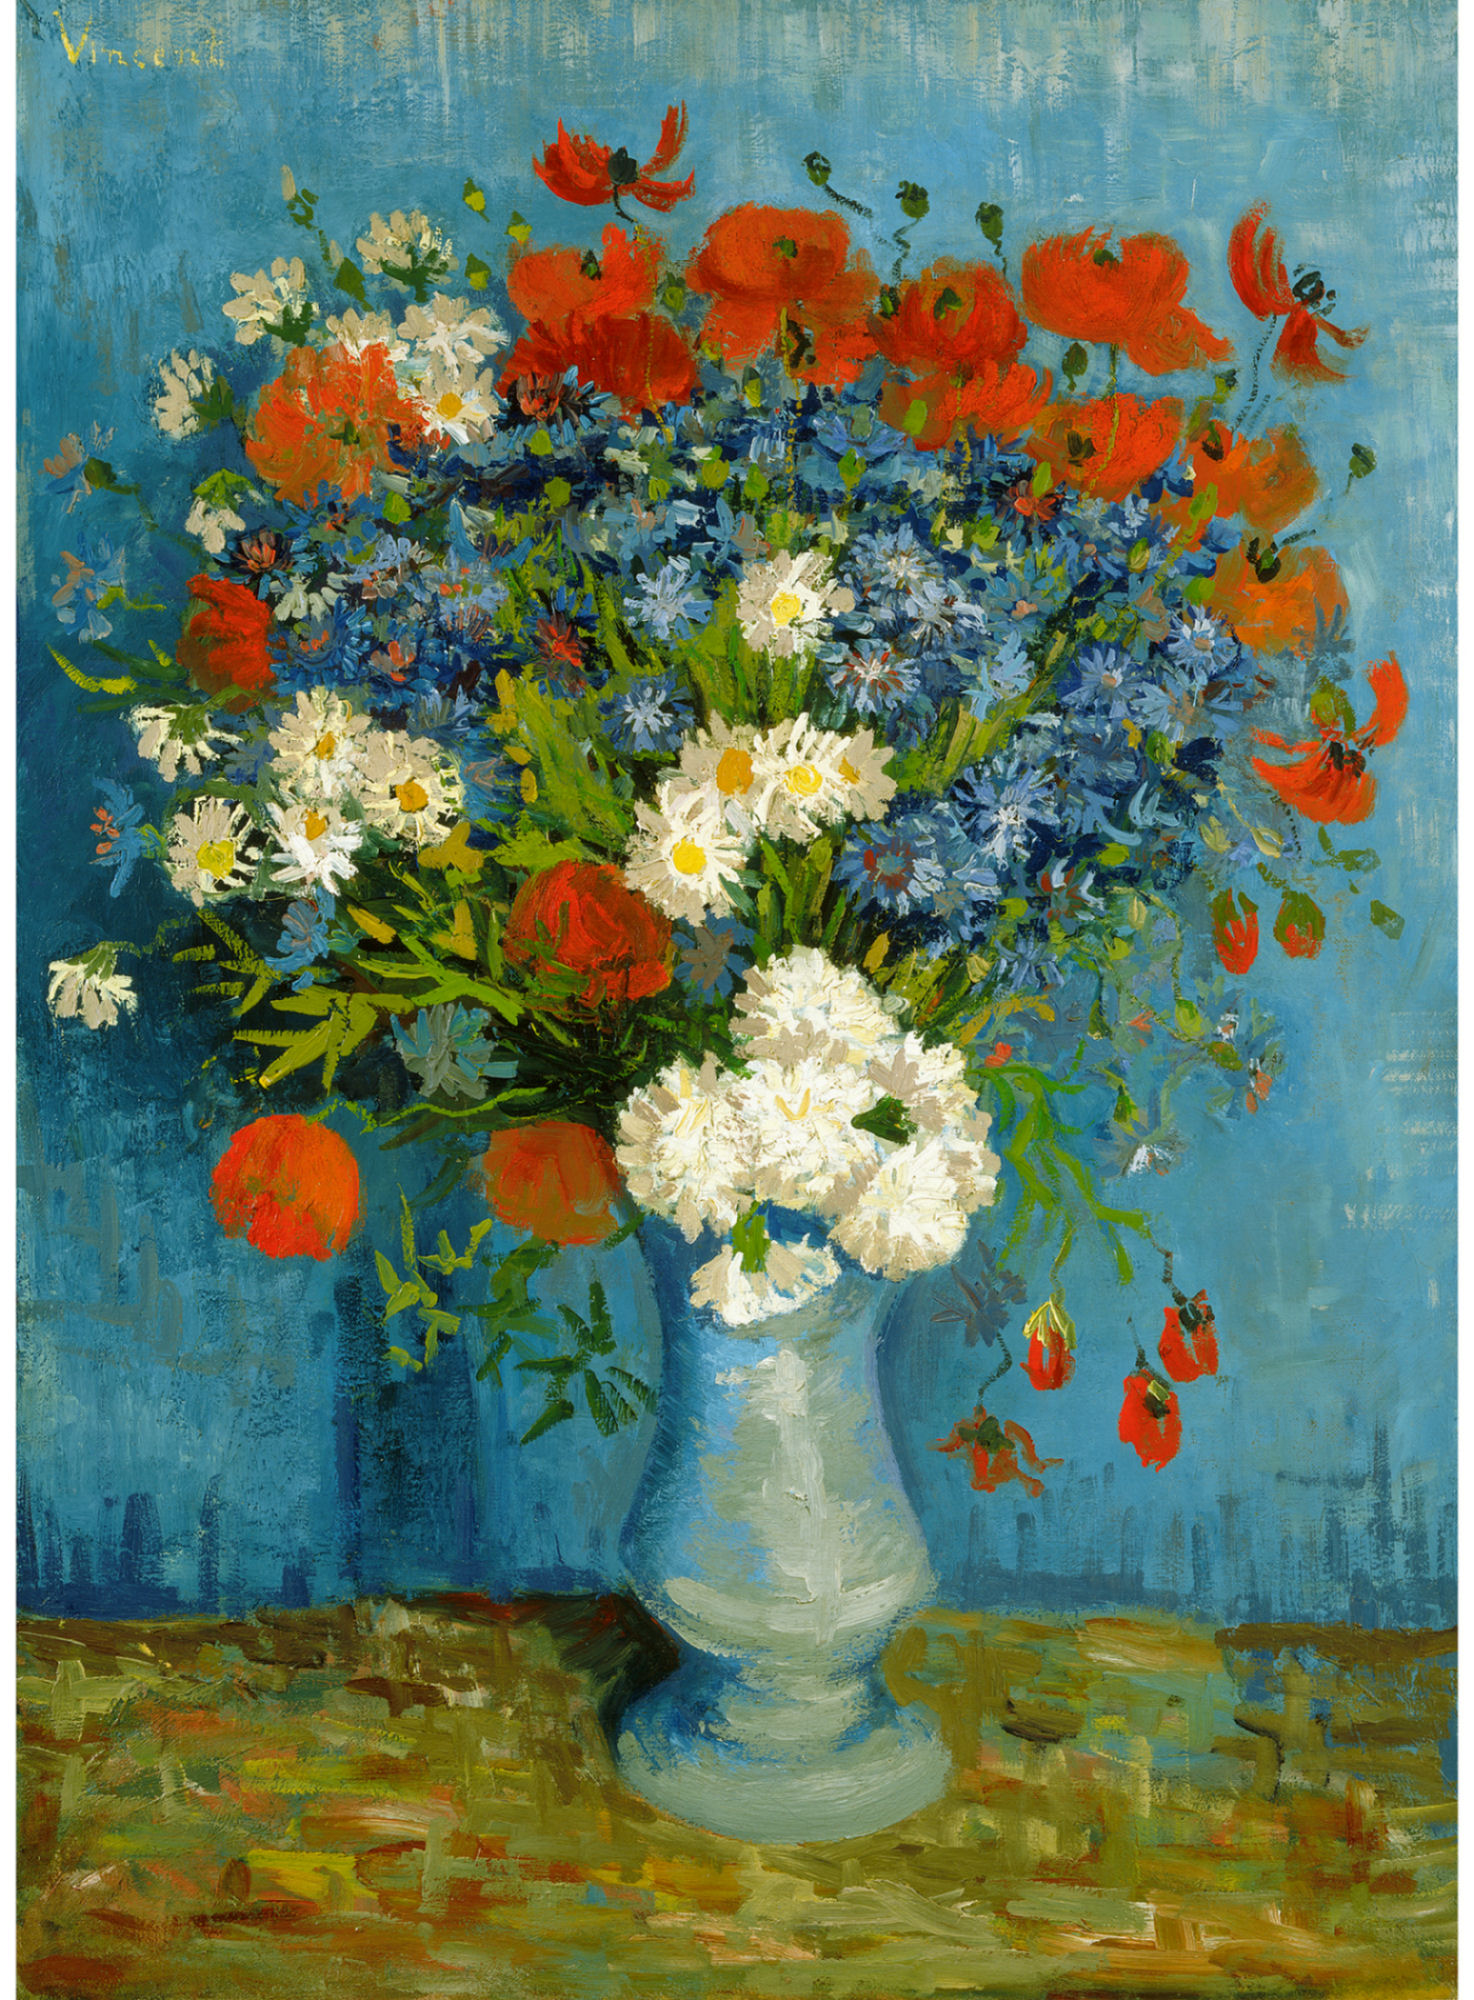 Deborah feller artist deborahfeller vase with cornflowers and poppies 1887 oil on canvas 31 x 26 80 x 67 cm triton foundation belgium reviewsmspy